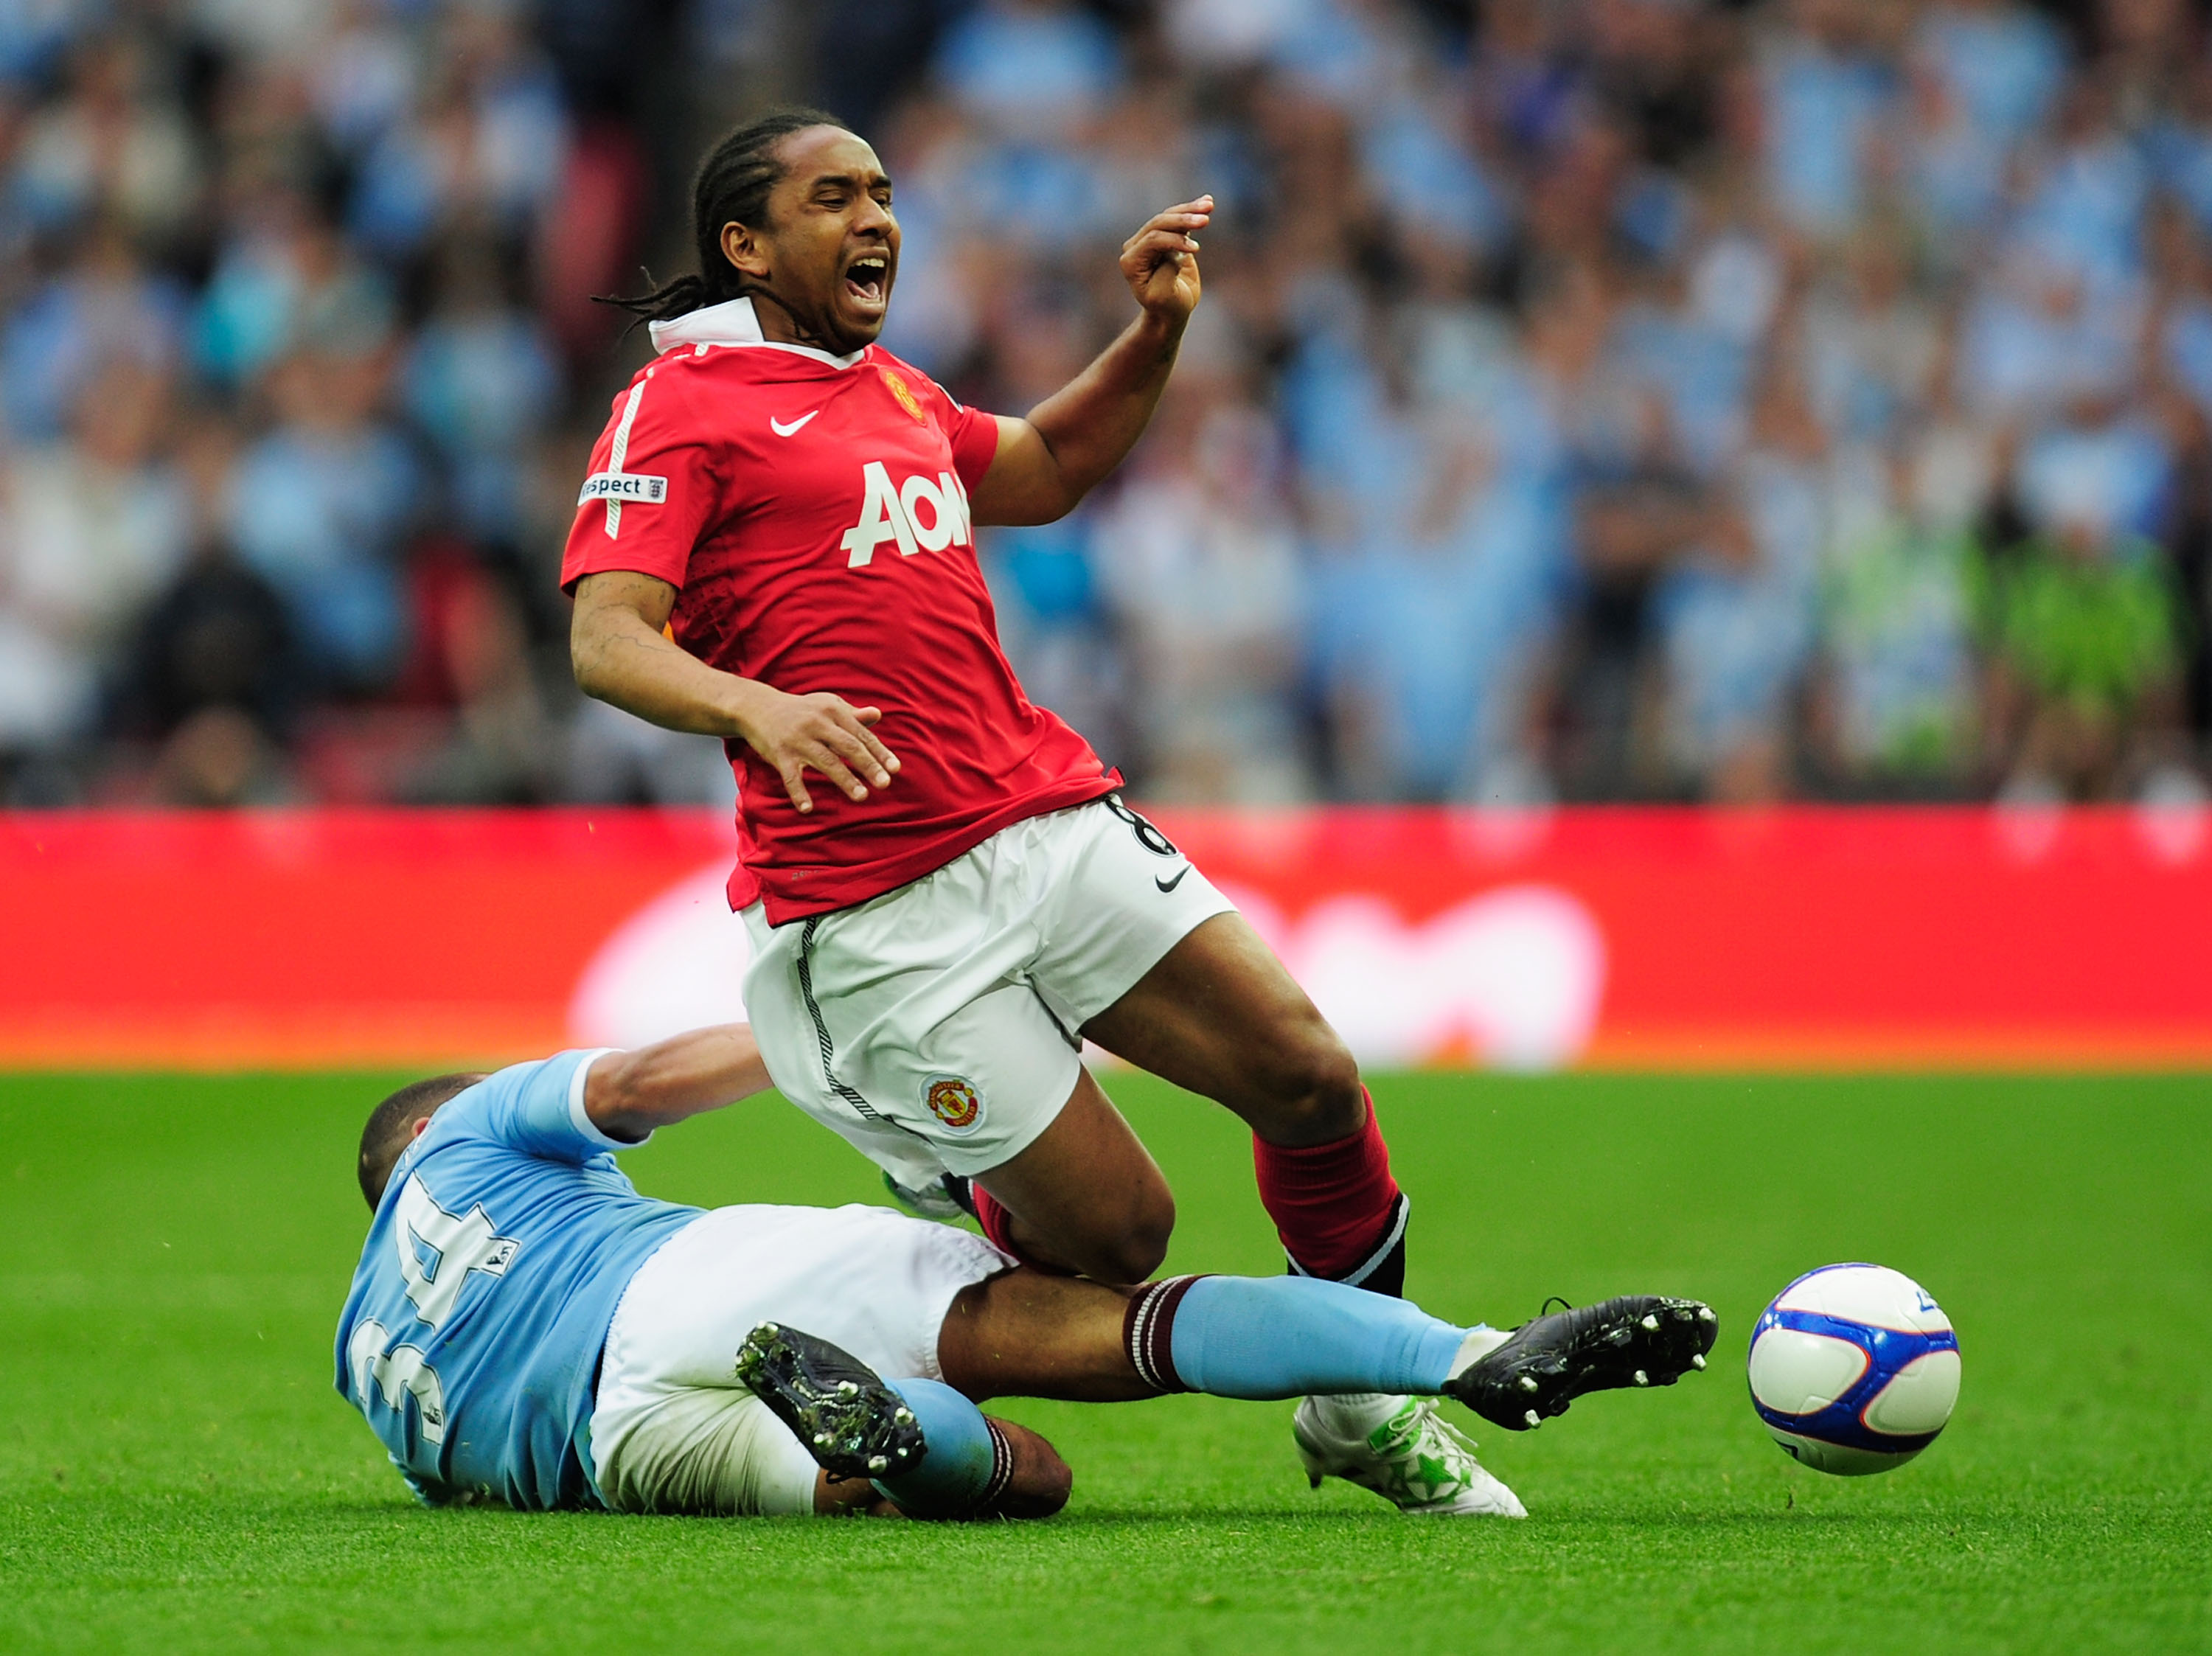 LONDON, ENGLAND - APRIL 16:  Nigel de Jong of Manchester City tackles Anderson of Manchester United during the FA Cup sponsored by E.ON semi final match between Manchester City and Manchester United at Wembley Stadium on April 16, 2011 in London, England.